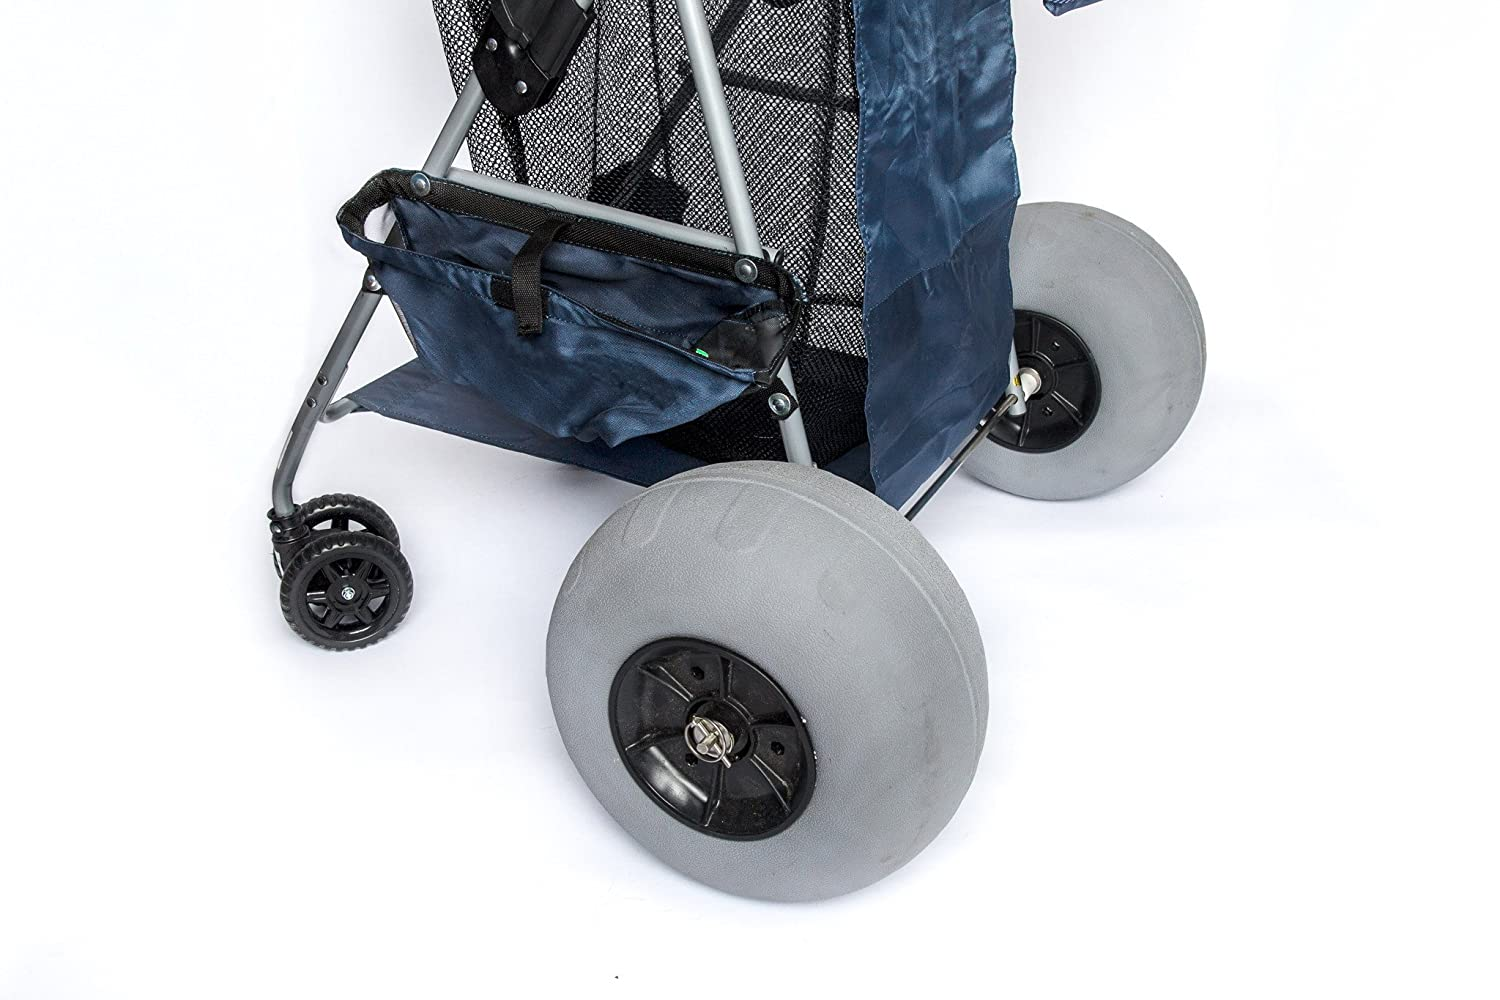 """12"""" Balloon Wheel Conversion Kit for Big Wheel Beach Carts-Includes Stainless Steel Axle,(2)12"""" Balloon/Beach Tires,(4)Bearings, Stainless Steel Axle -Easy Install,No Drilling/Tools Required."""